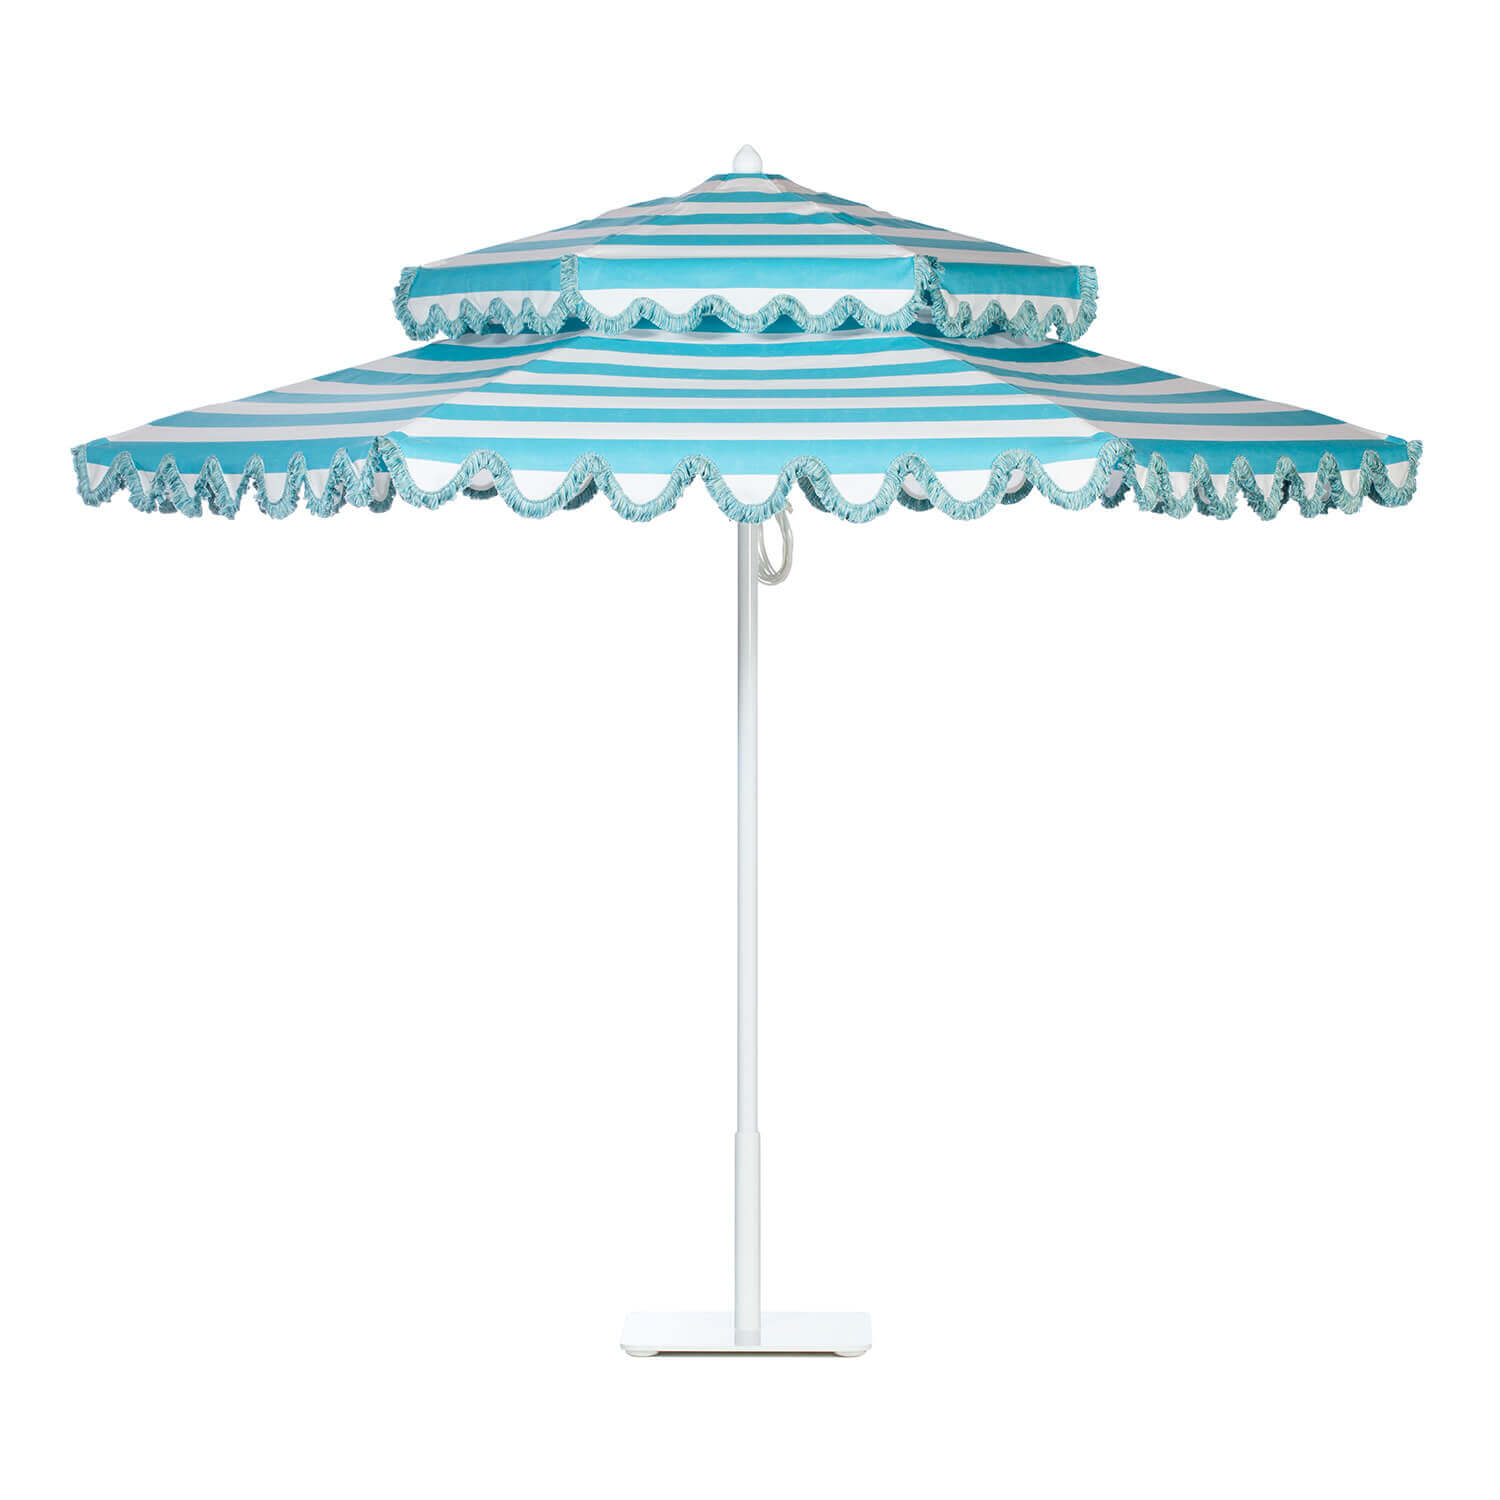 Aqua Sea Stripe Umbrella Image